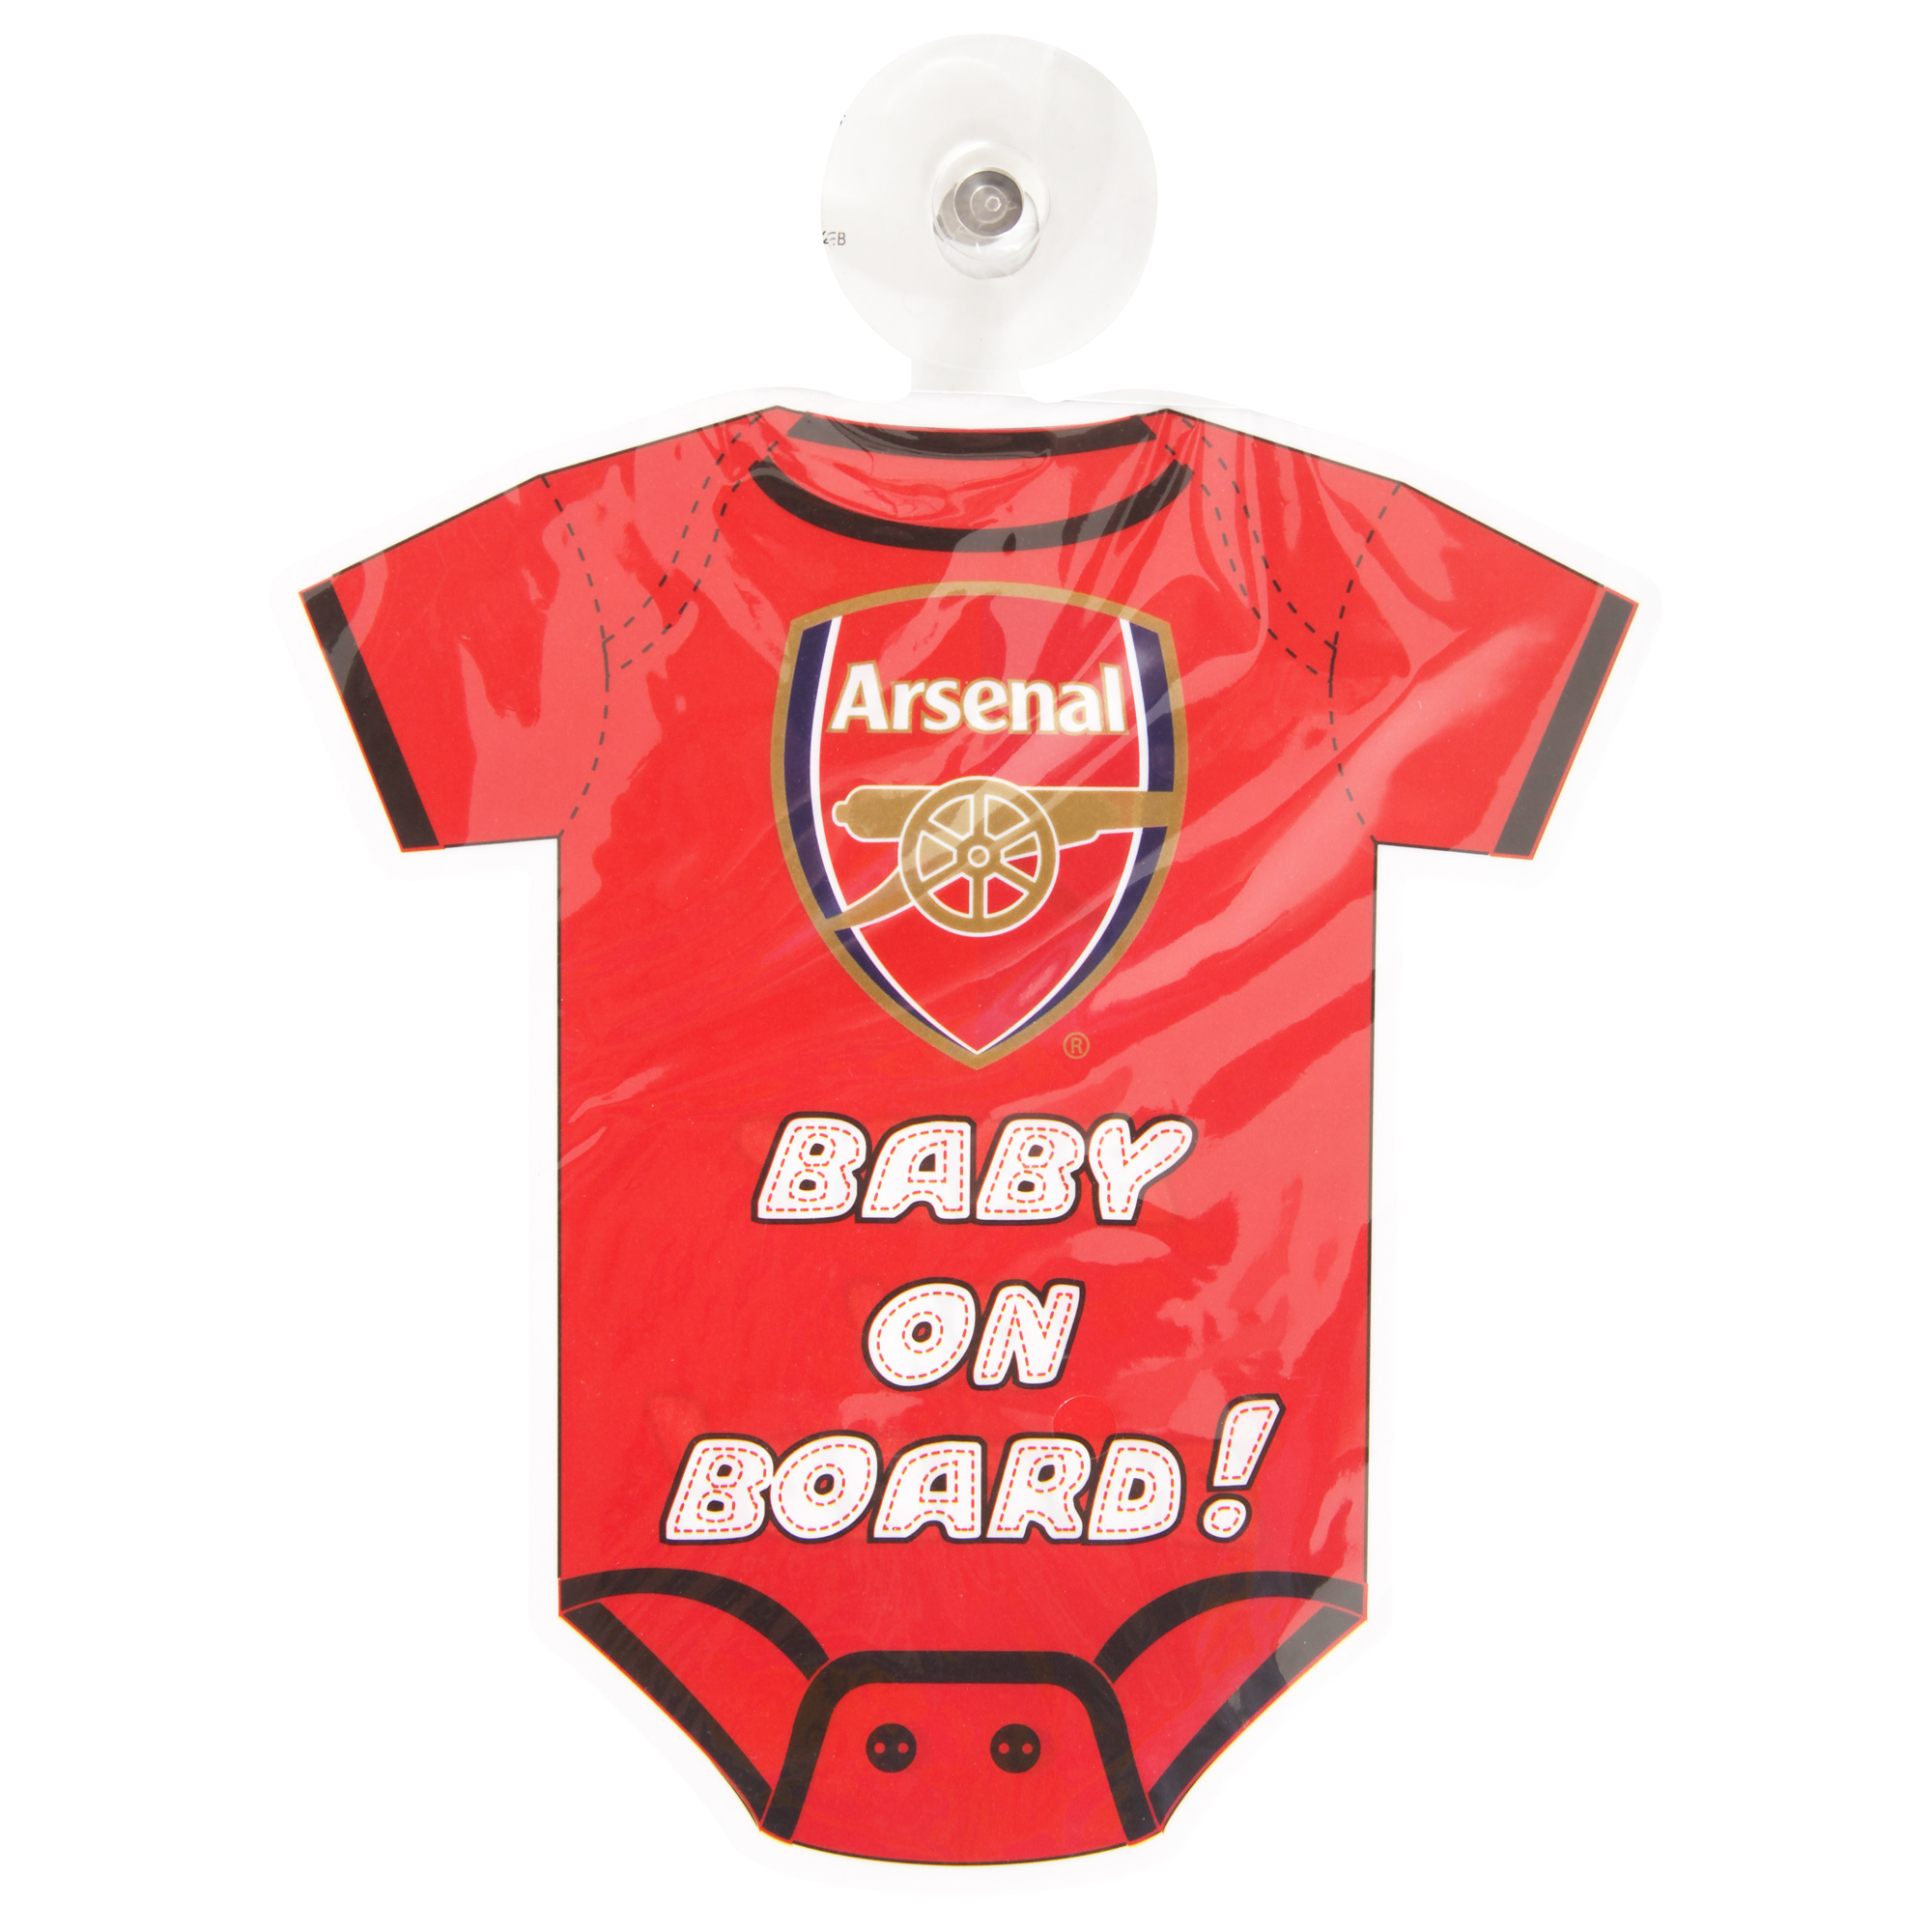 5370141e9 Arsenal FC Official Football Kit Baby On Board Car Window Sign ...